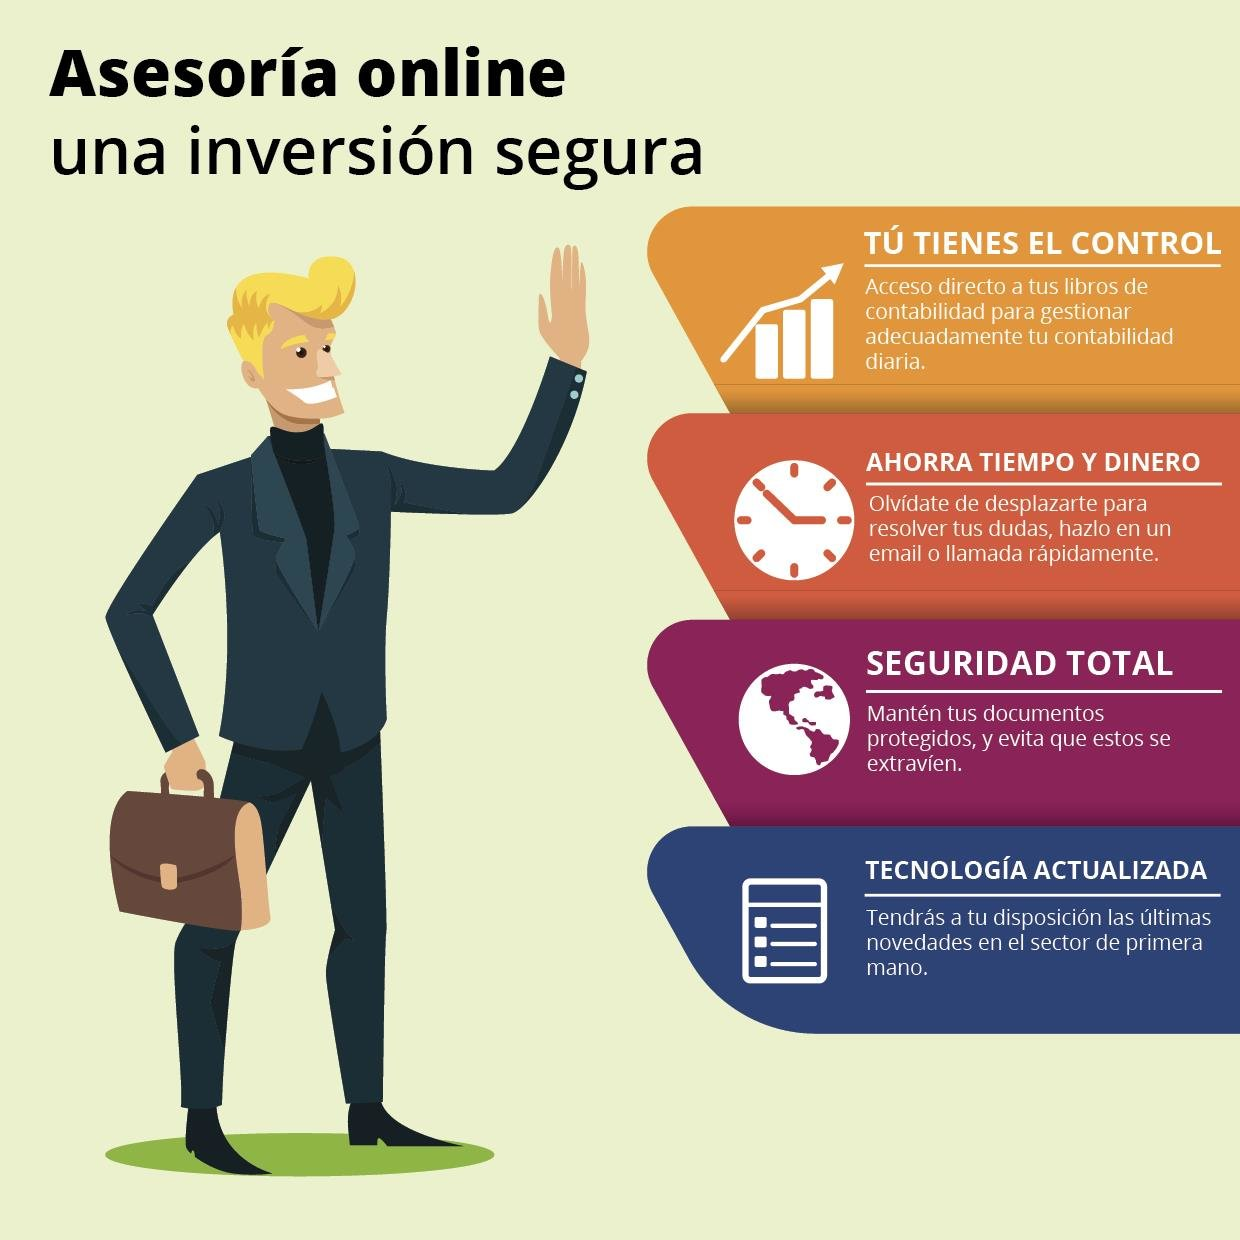 Asesorias online